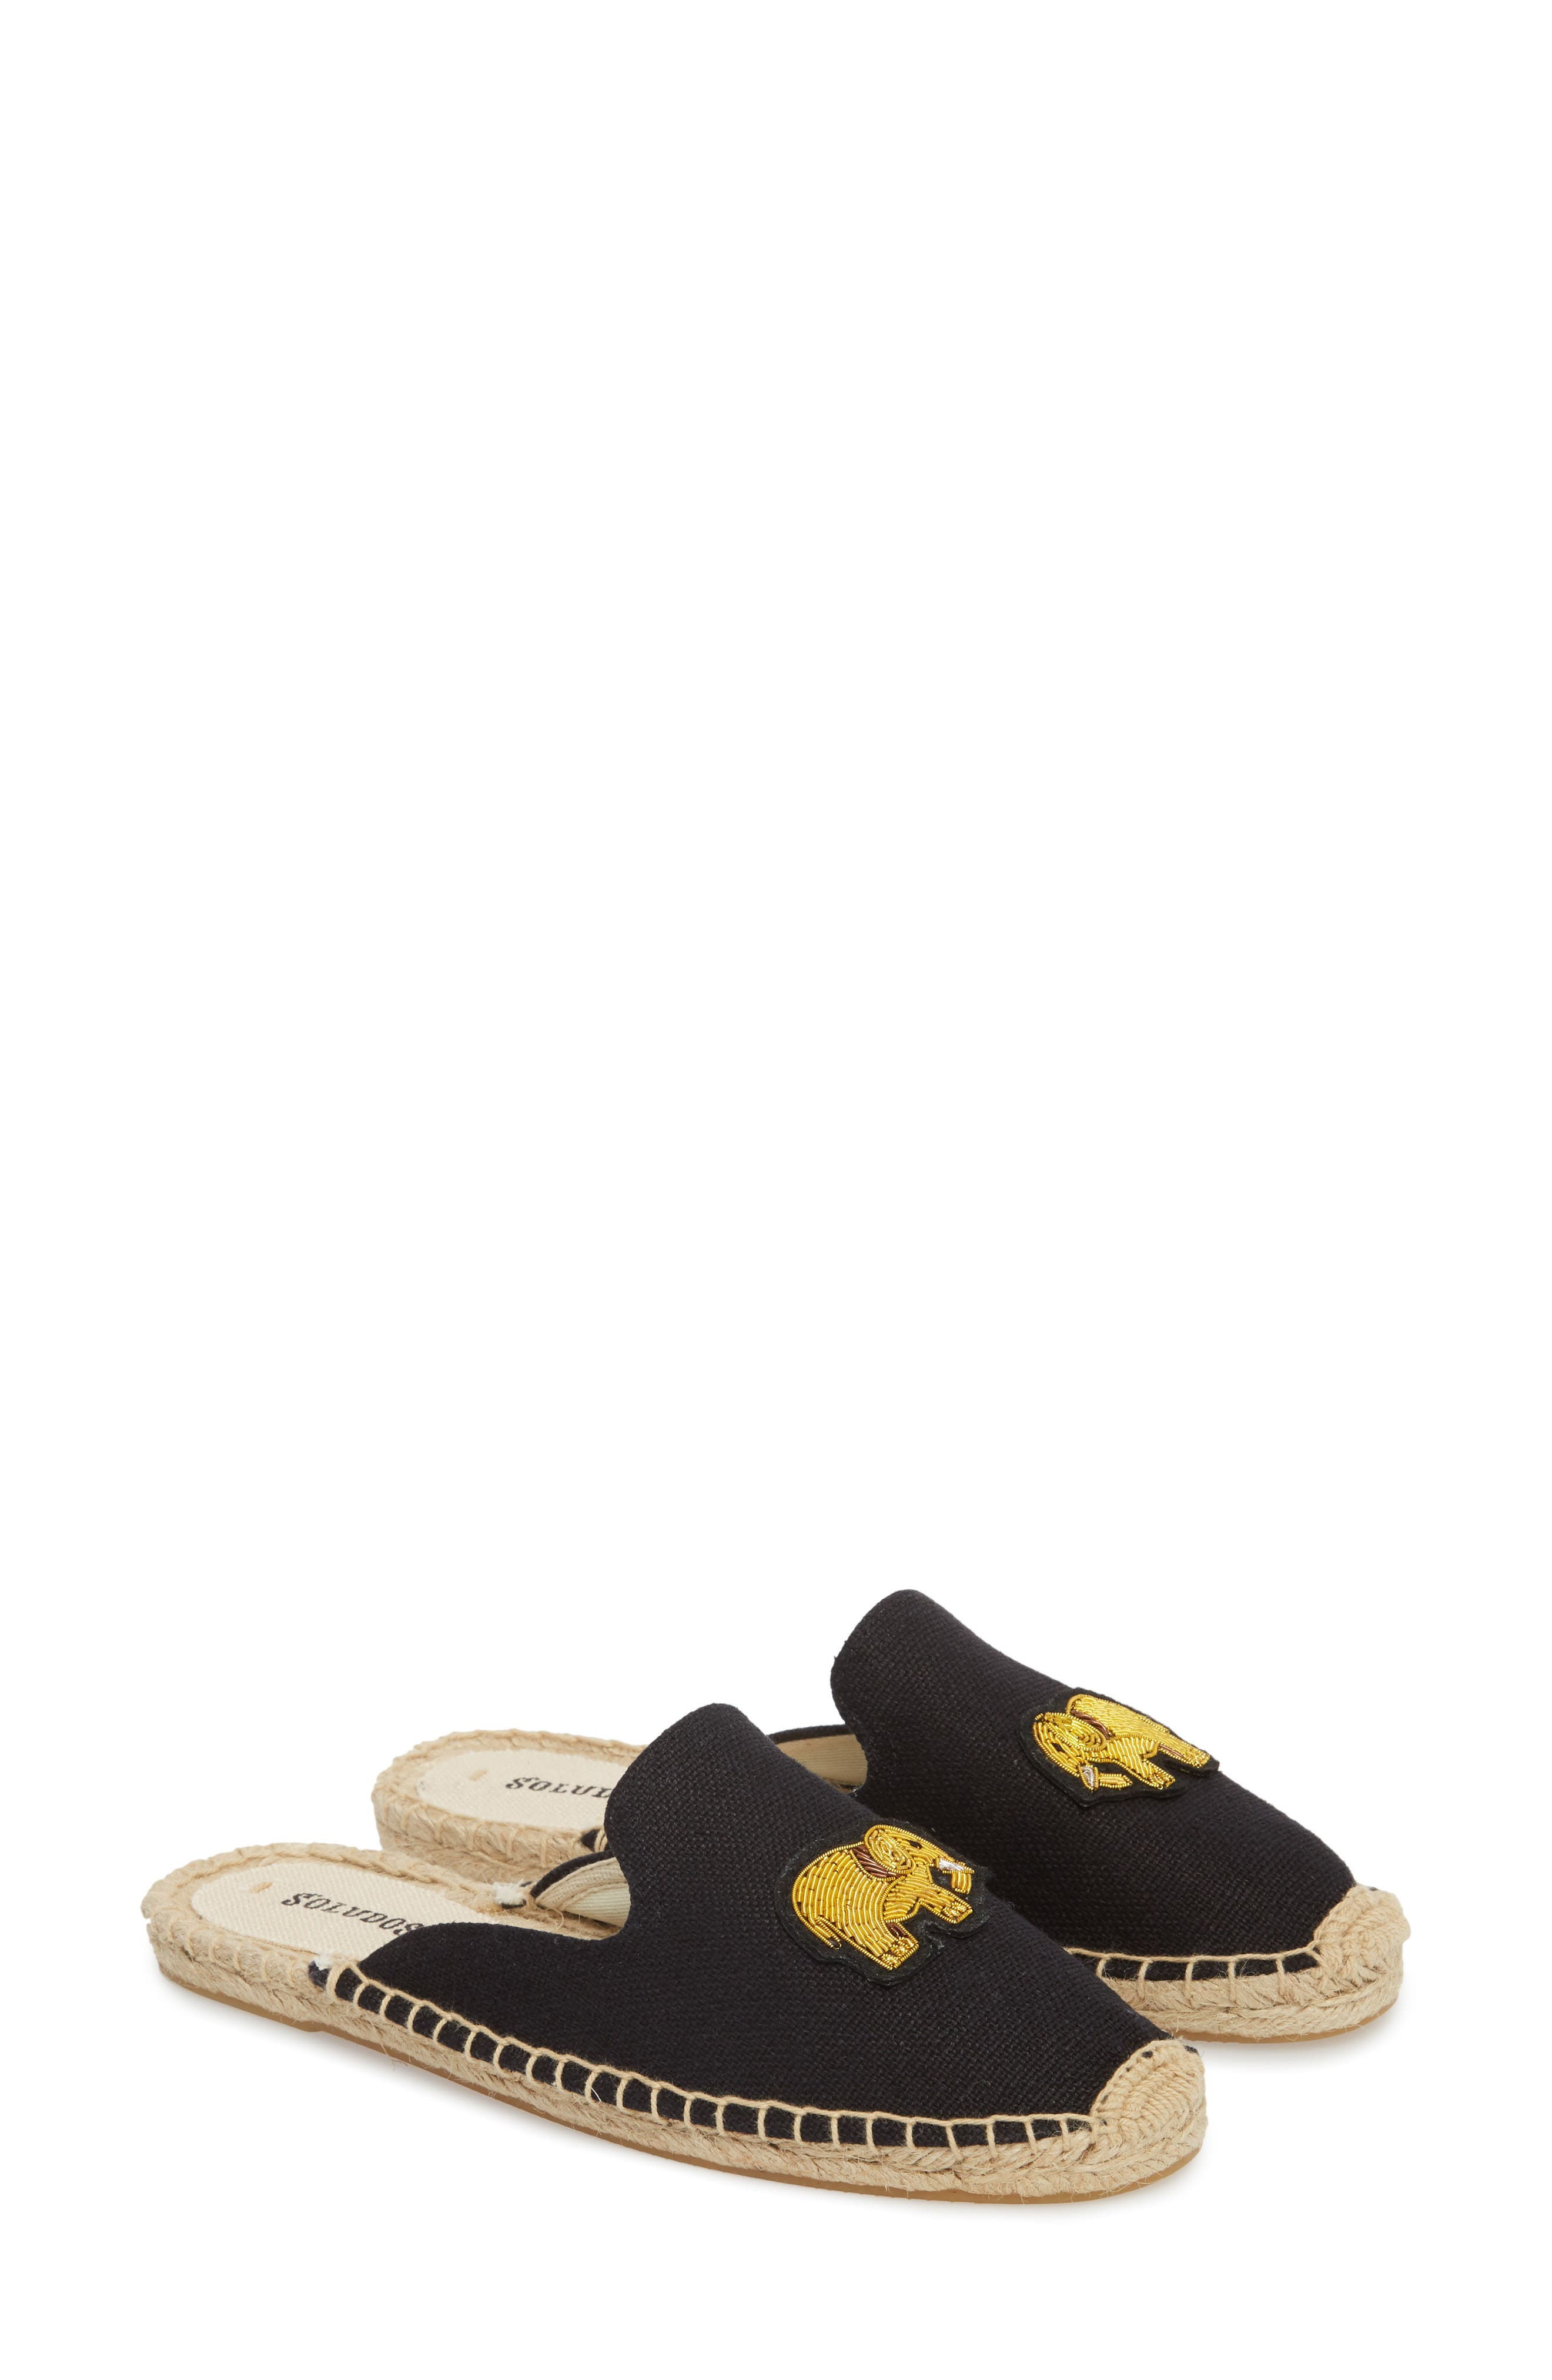 Elephant Beaded Espadrille Mule,                             Alternate thumbnail 2, color,                             001